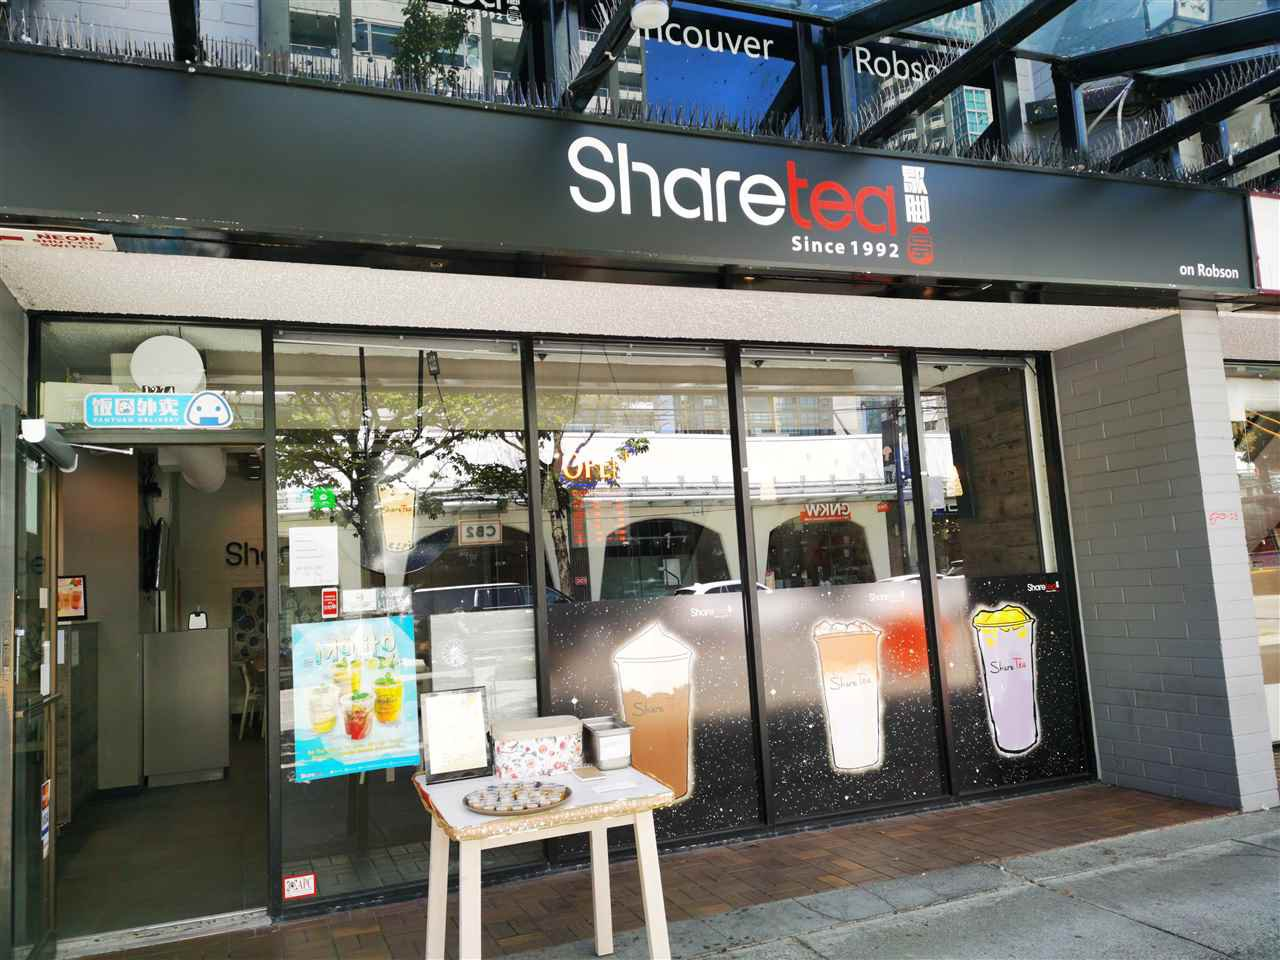 Main Photo: 1274 ROBSON Street in Vancouver: West End VW Business for sale (Vancouver West)  : MLS®# C8033471